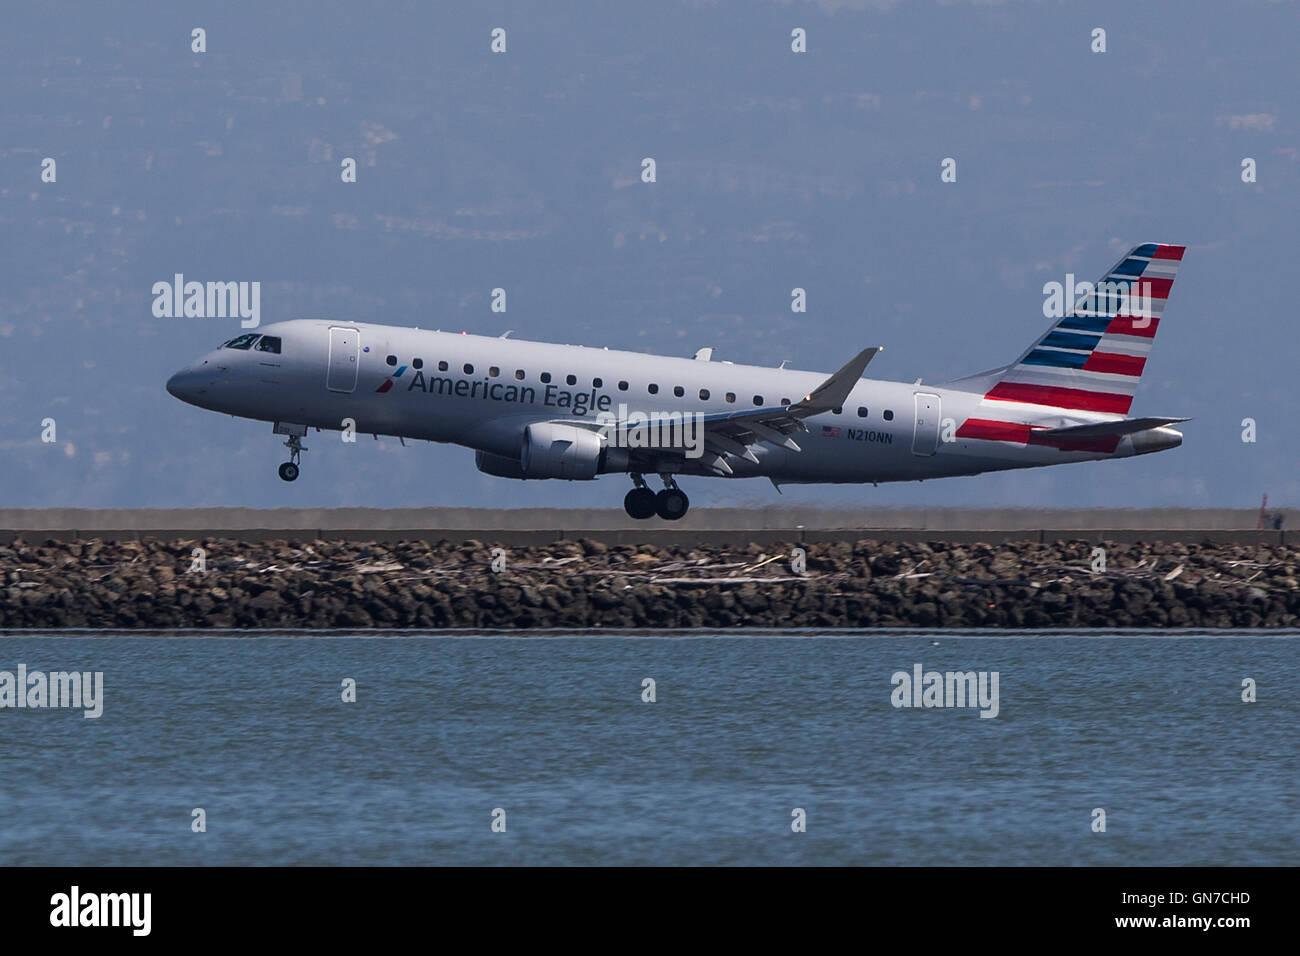 American Eagle Embraer ERJ 170-200 LR (N210NN) lands at San Francisco International Airport (SFO), Millbrae, California, - Stock Image